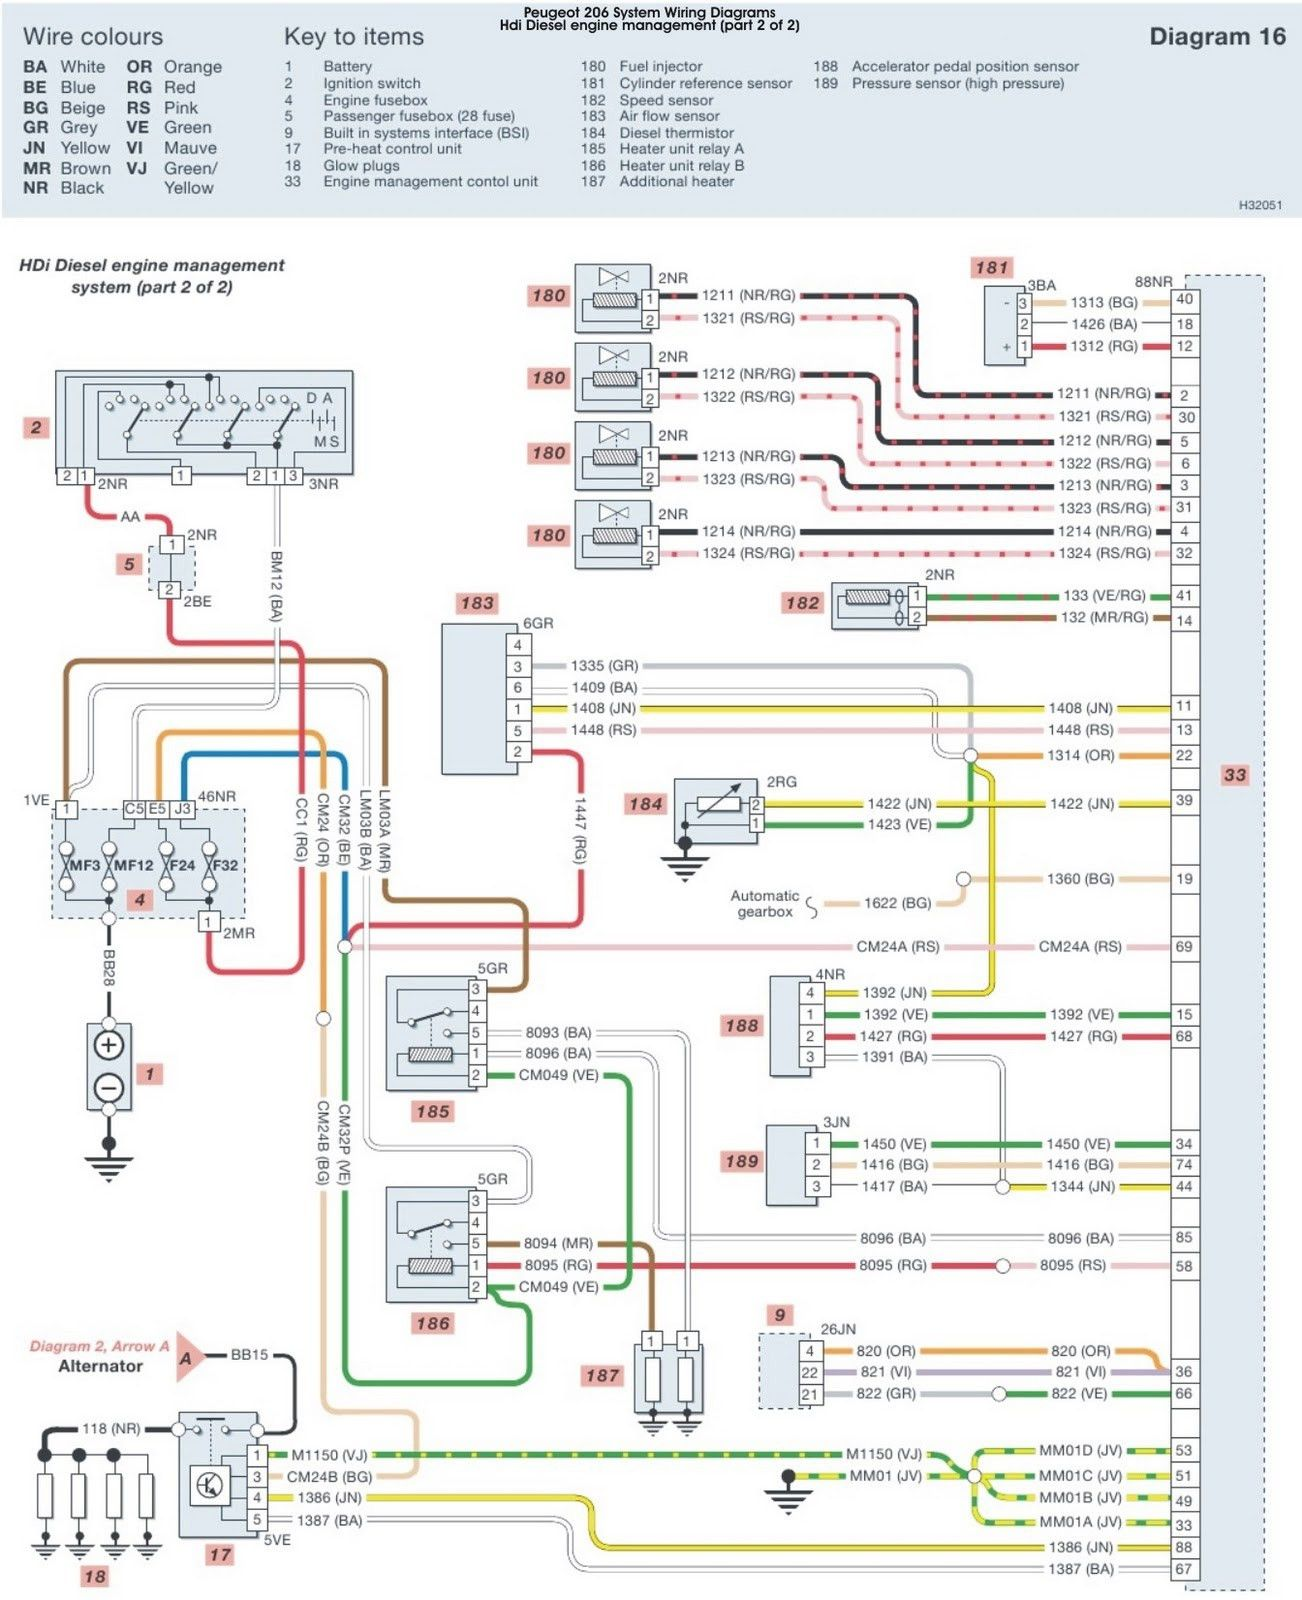 small resolution of peugeot wiring diagram download wiring diagram fascinating peugeot 607 wiring diagram free download peugeot 607 wiring diagram